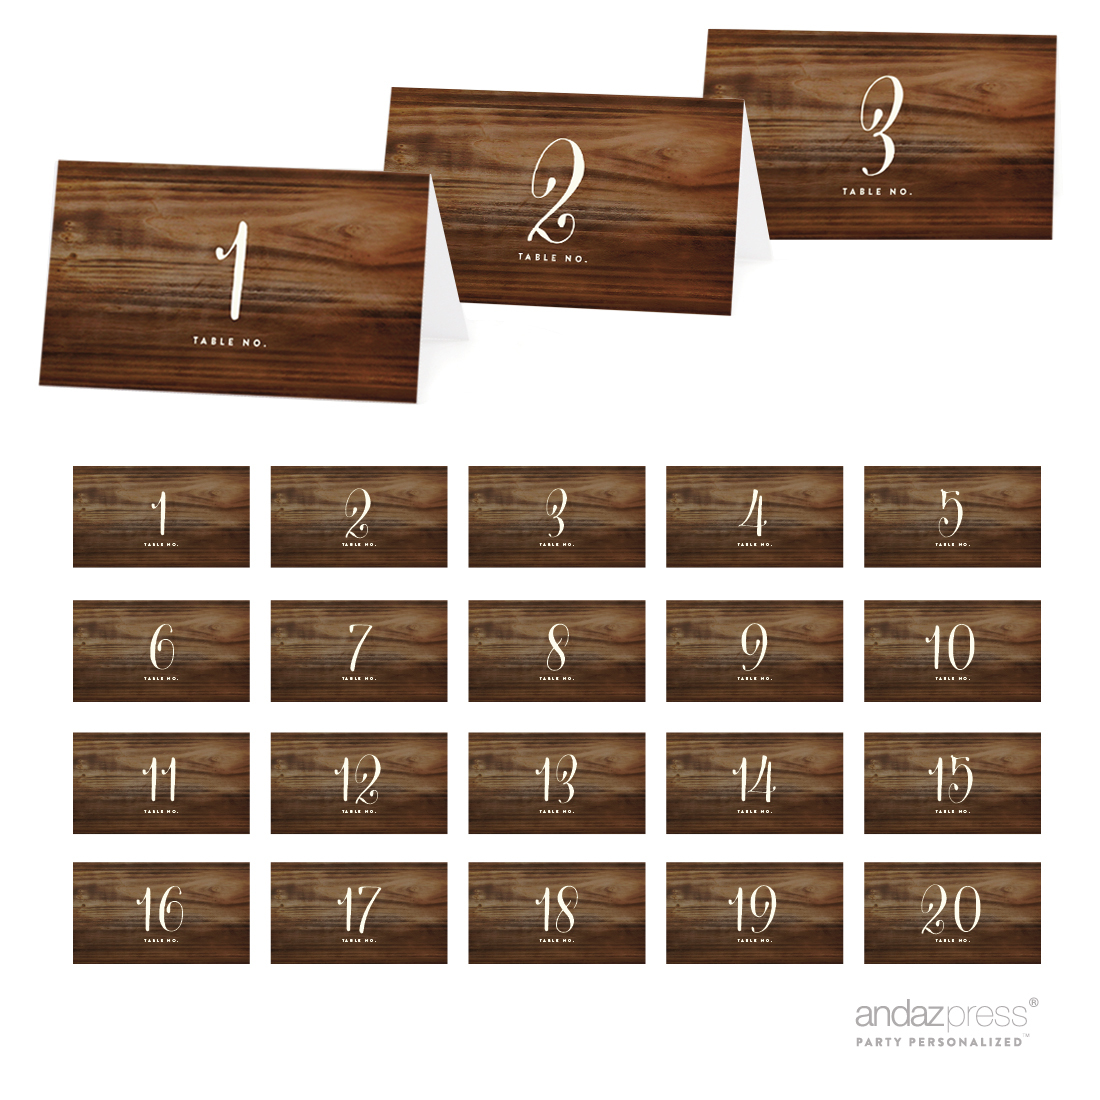 42389 Rustic Wood Table Tent Place Cards, 20-Pack